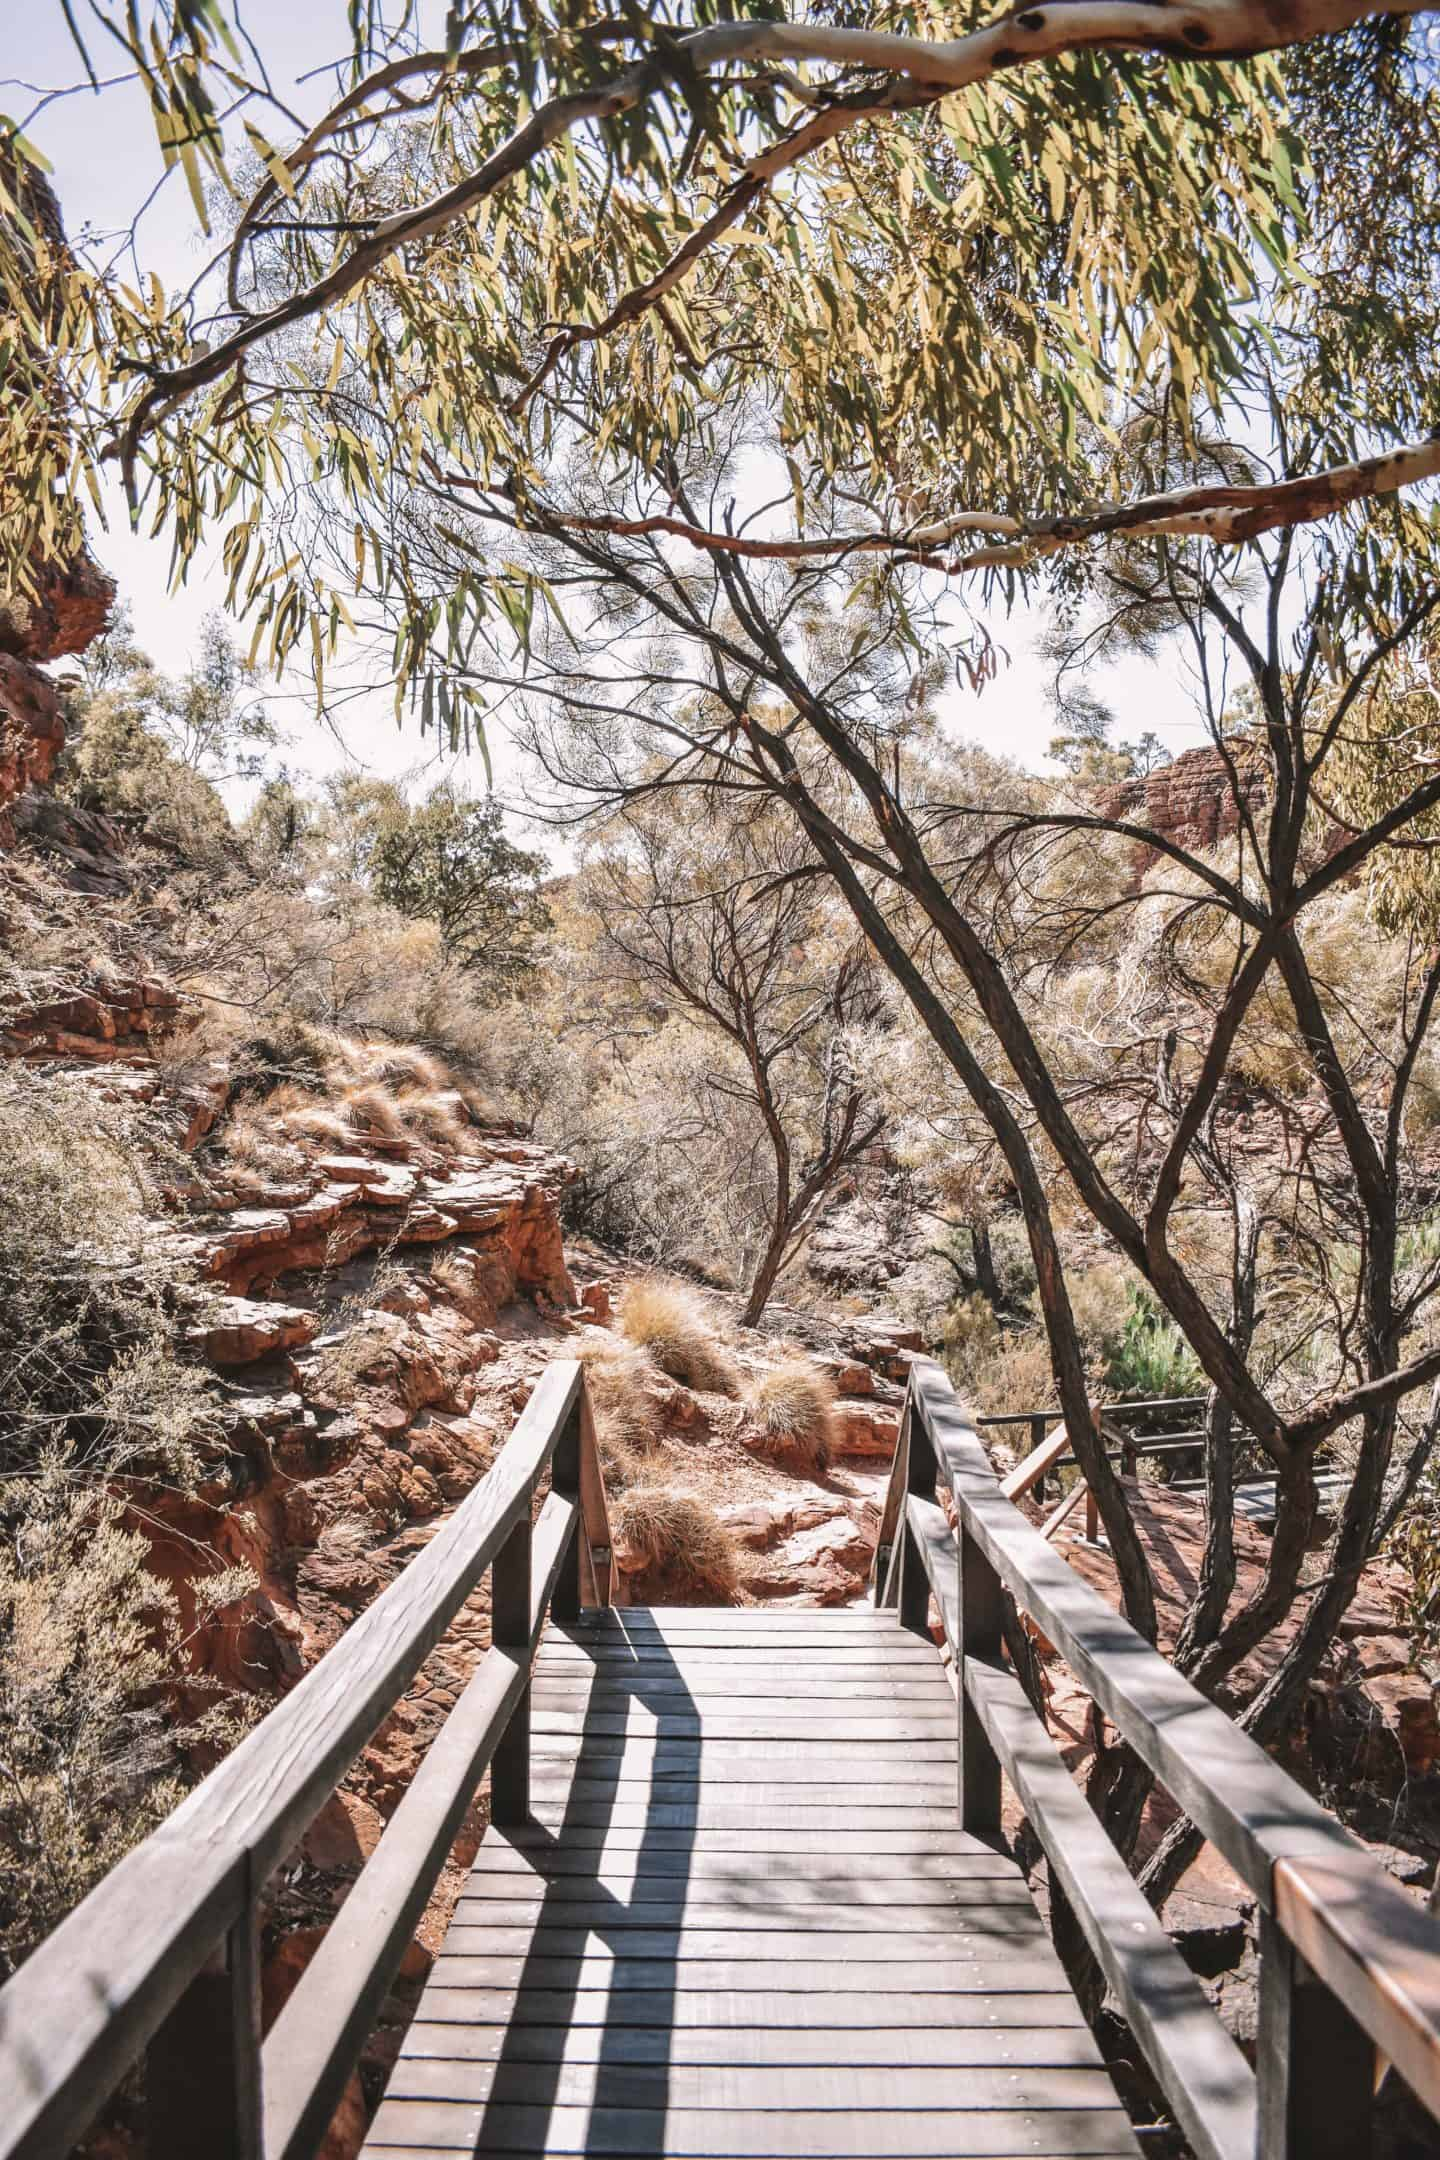 The best Australian Outback Itinerary. A comprehensive road trip of the Australian outback. Enjoy the sights from Adelaide to Alice Springs, including the famous Uluru and Kings Canyon and the Kata-Tjuta on this epic Australian outback road trip itinerary. #outback #australia #Itinerary #outbackaustralia #australianroadtrip